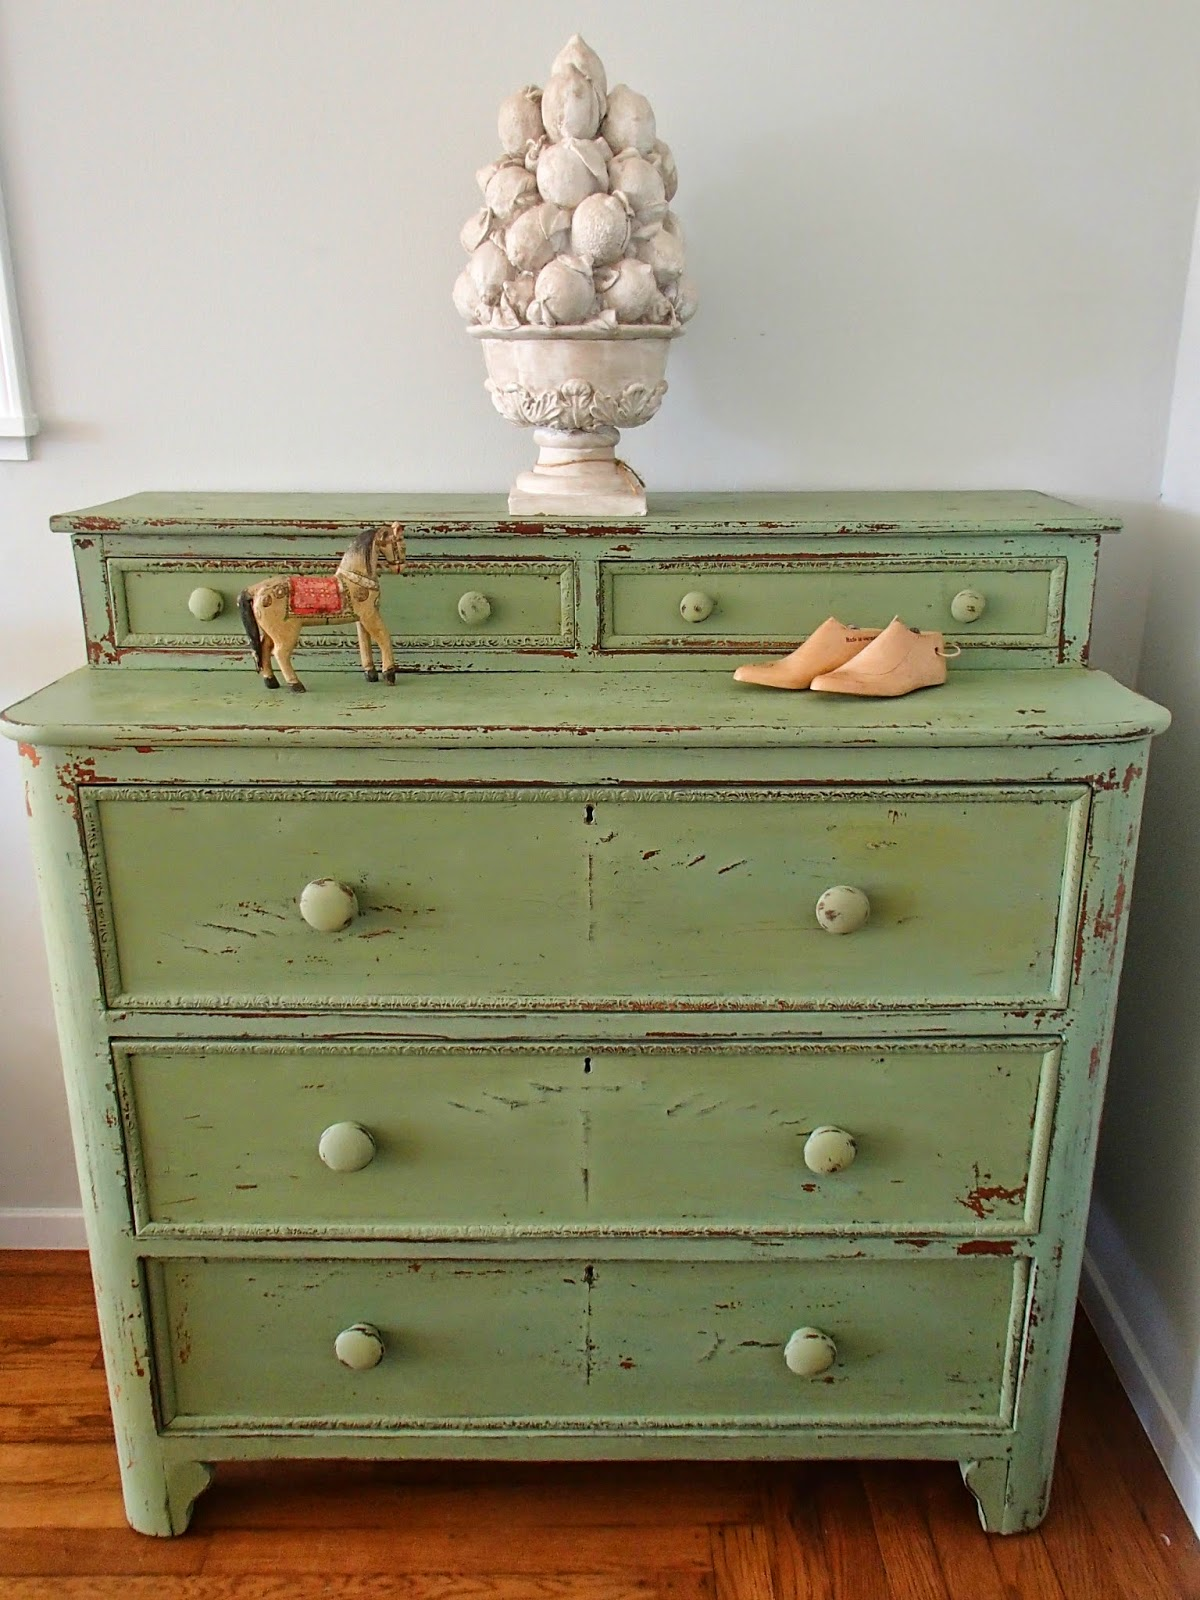 d d 39 s cottage and design another lucketts green chippy dresser. Black Bedroom Furniture Sets. Home Design Ideas